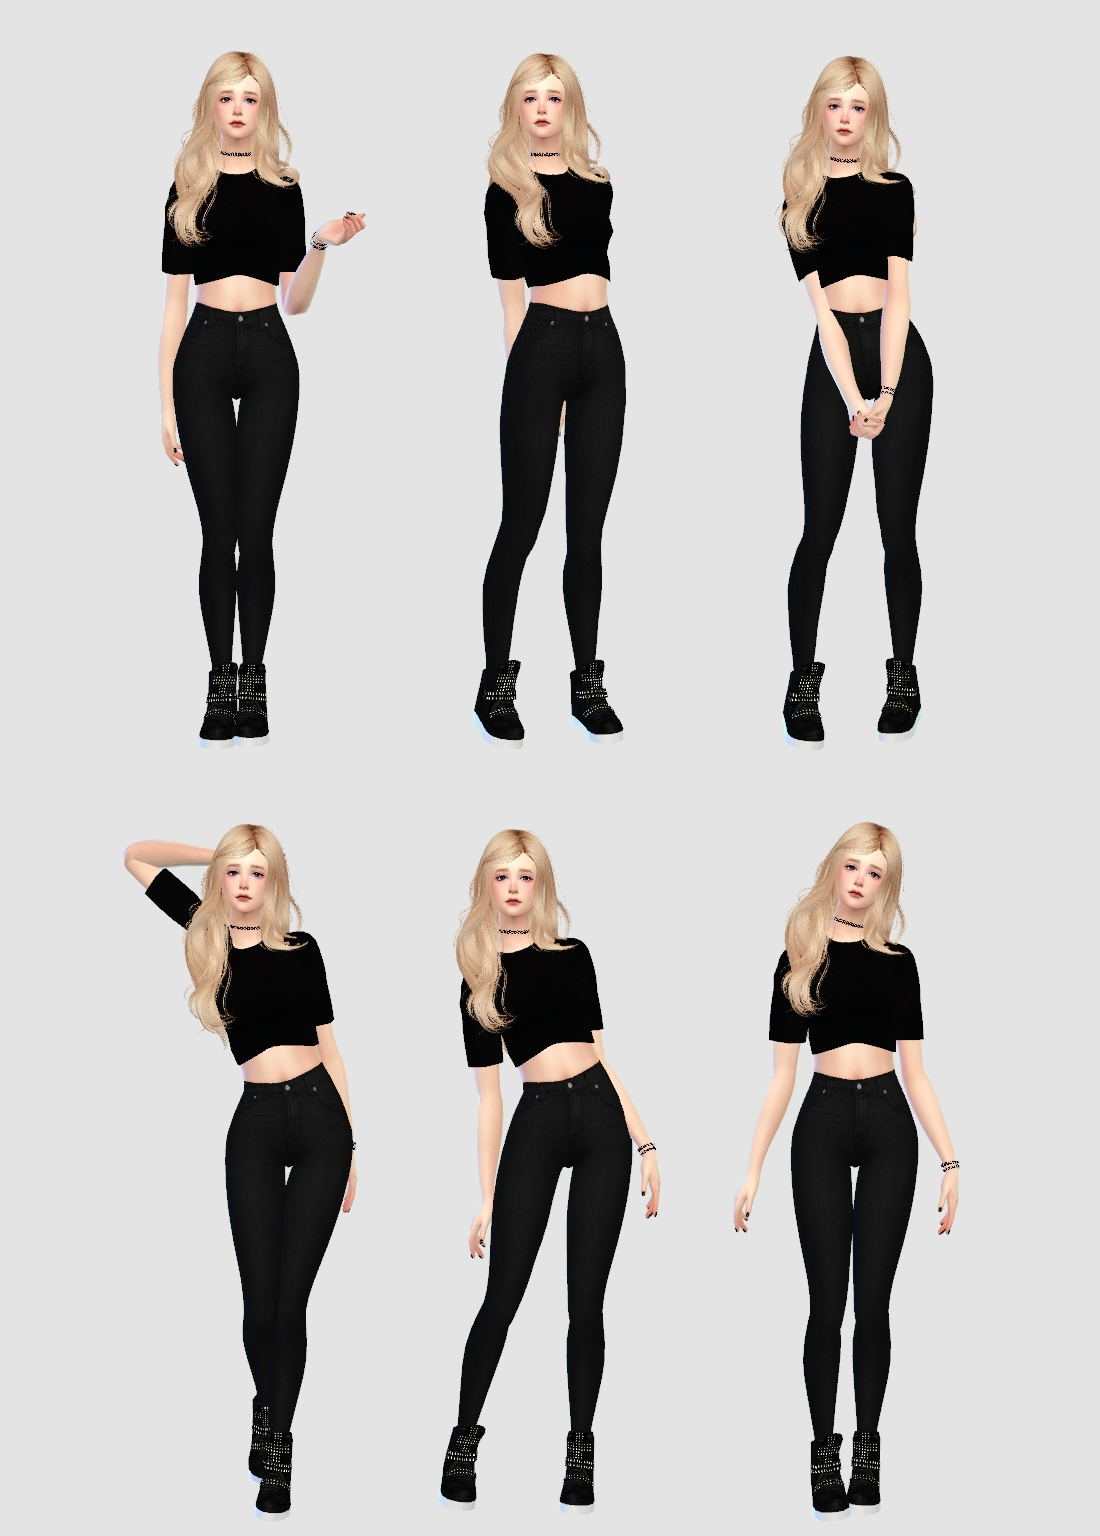 Sims 4 Updates: Flower Chamber - Poses : LOOKBOOK V.14 POSES SET, Custom  Content Download! | headshots | Pinterest | Sims, Pose and Sims cc